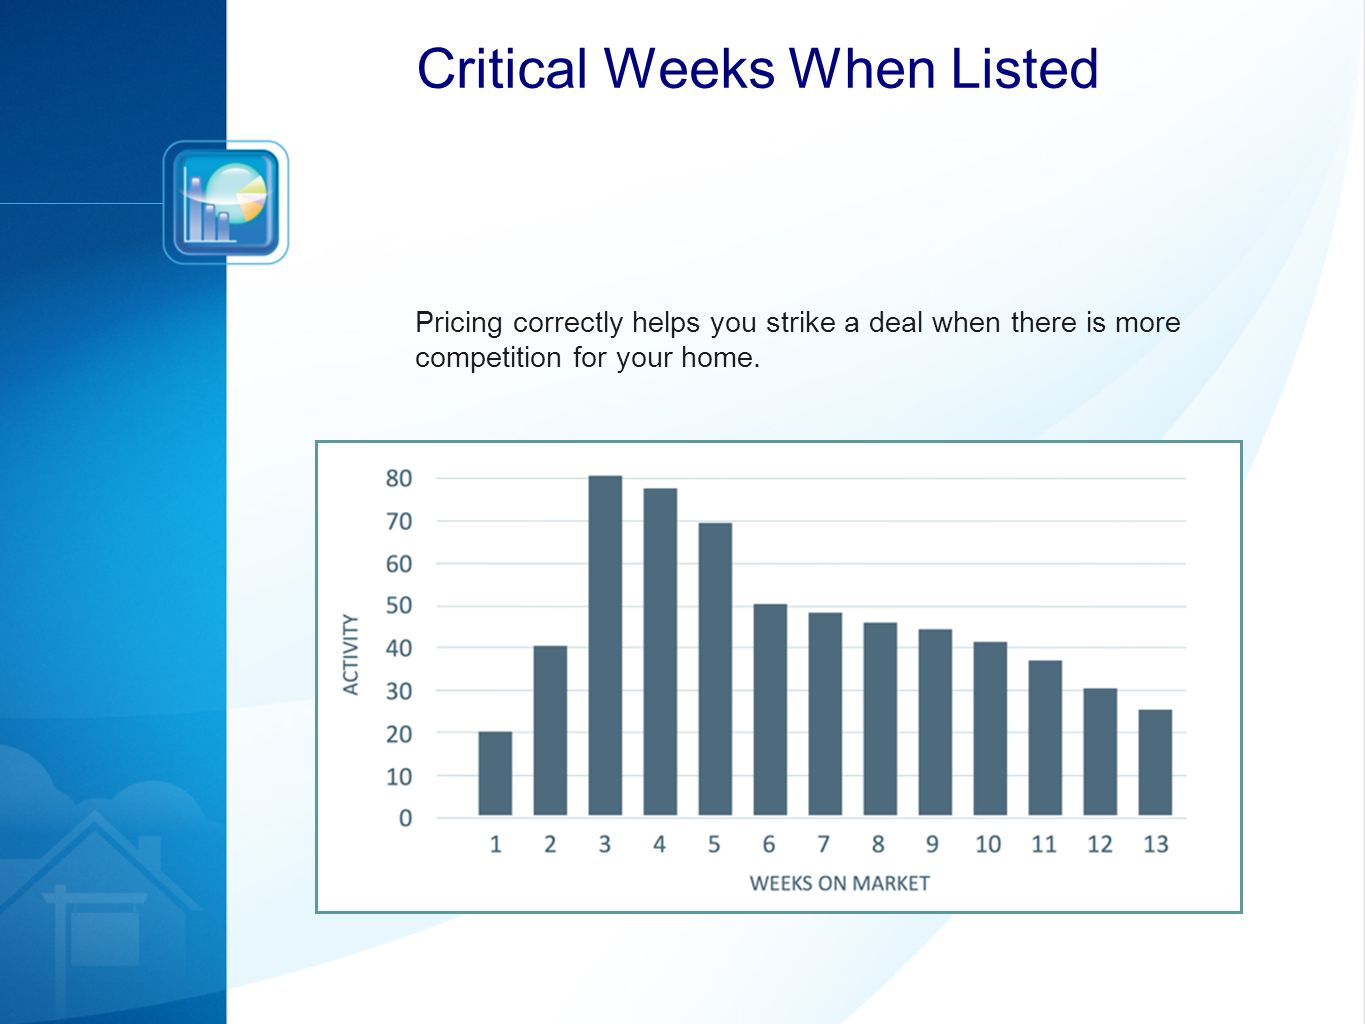 Pricing correctly helps you strike a deal when there is more competition for your home. Critical Weeks When Listed